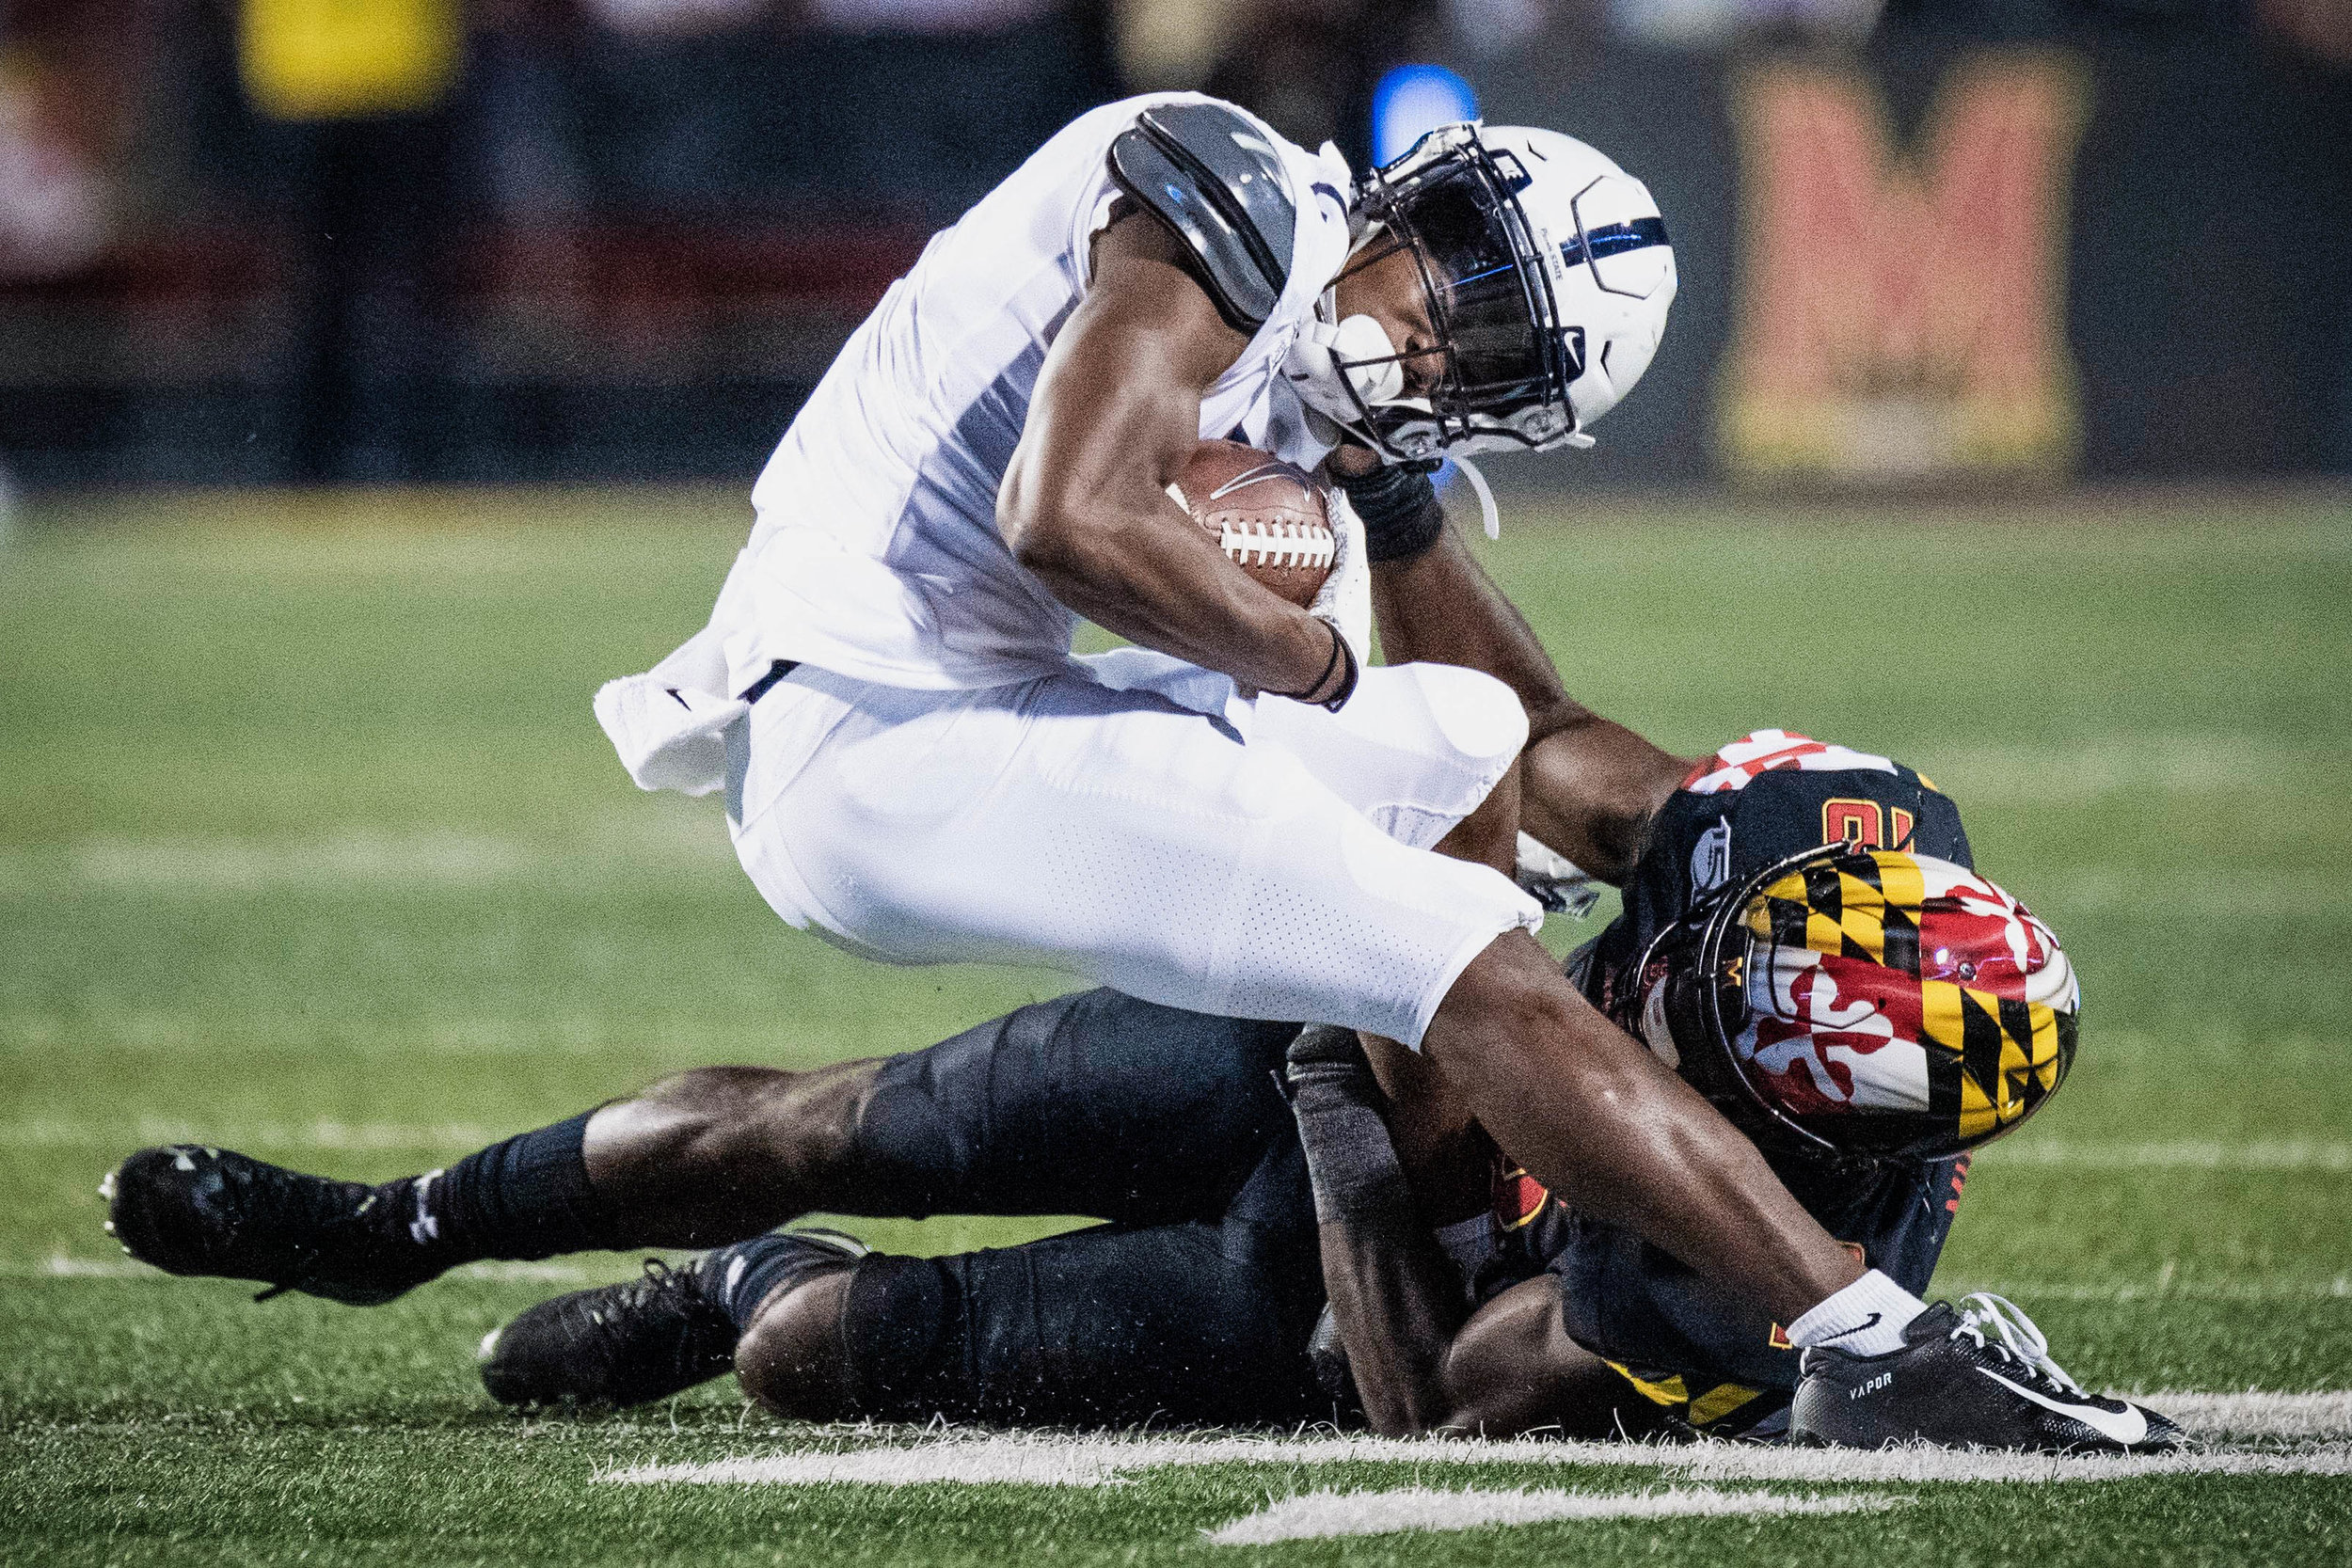 Maryland Terrapins defensive back Jordan Mosley (18) grabs the helmet of Penn State Nittany Lions wide receiver Jahan Dotson (5) during the game against Maryland on Friday, Sept. 27, 2019 at Capital One Field in College Park, Md. The Nittany Lion's defeated the Terrapins 59-0. | Photo by: Noah Riffe